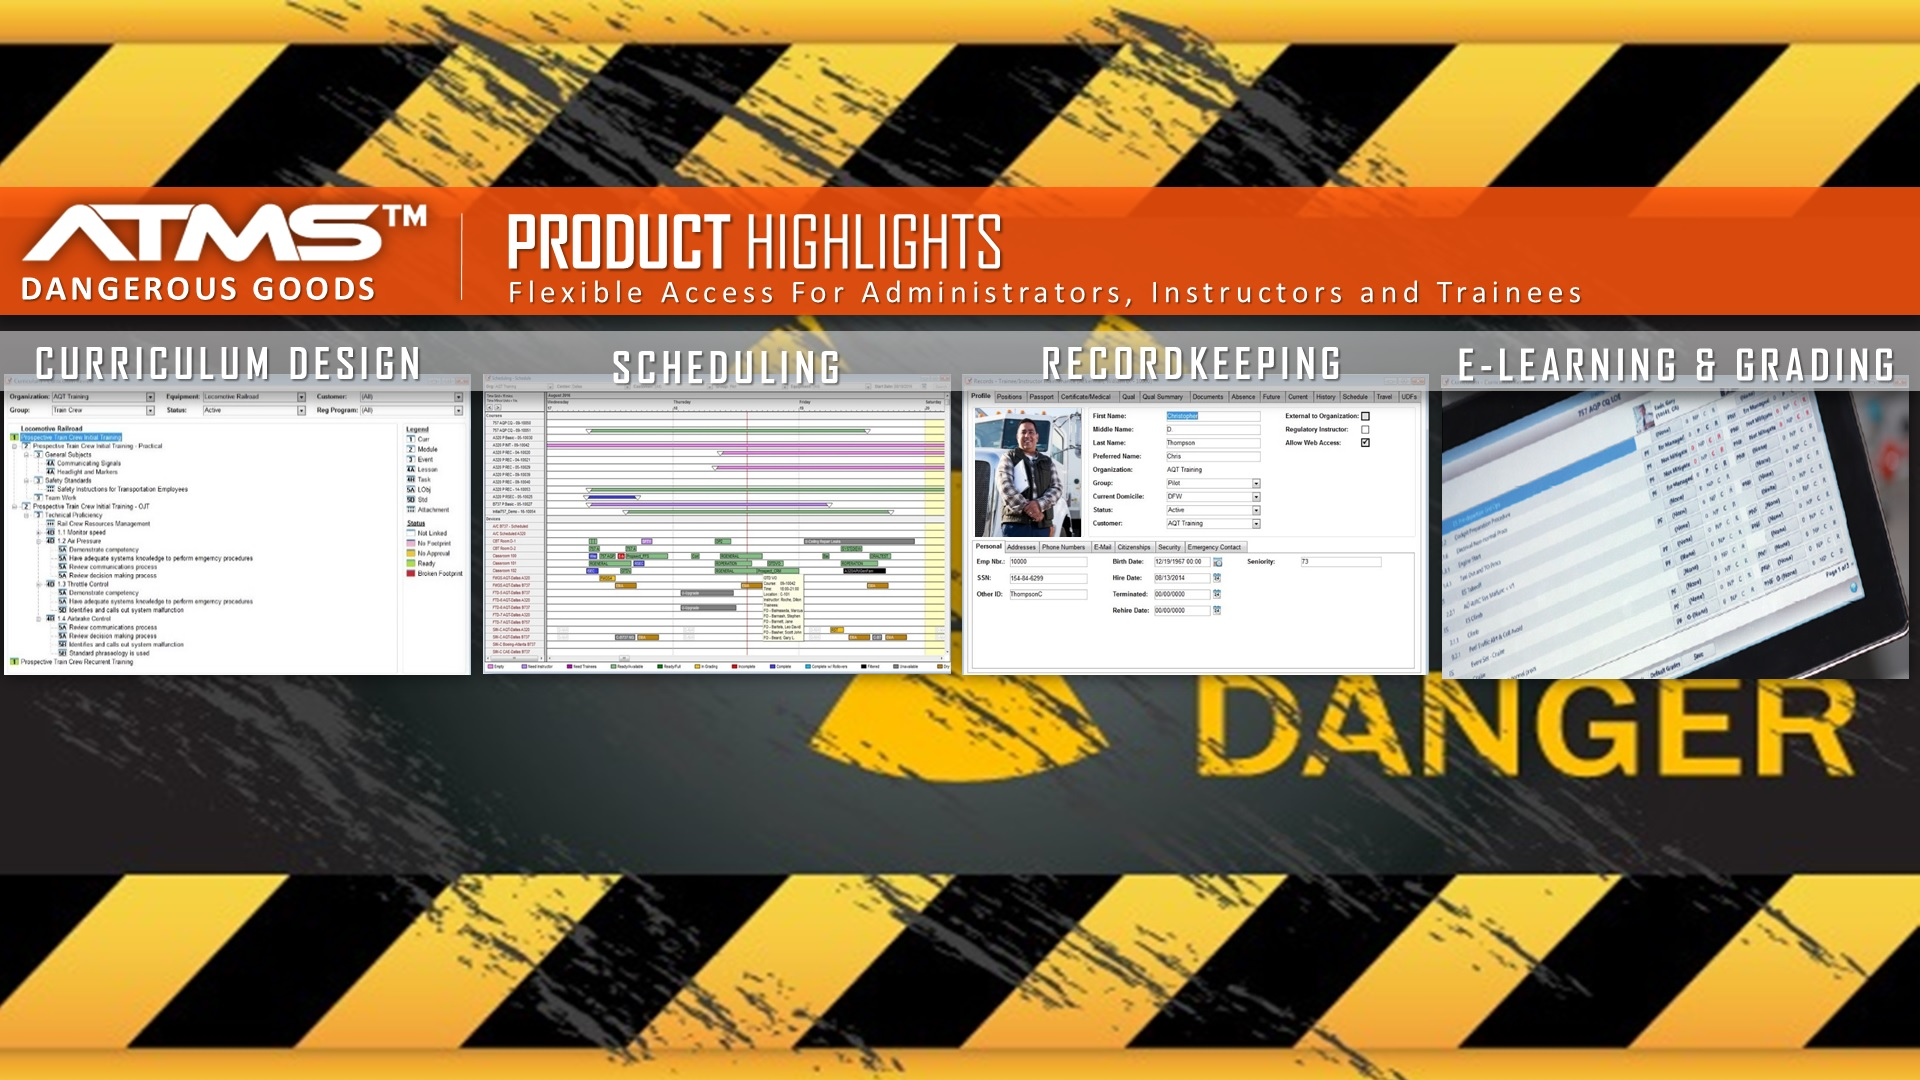 Dangerous-Goods-Training-System-Slide-4